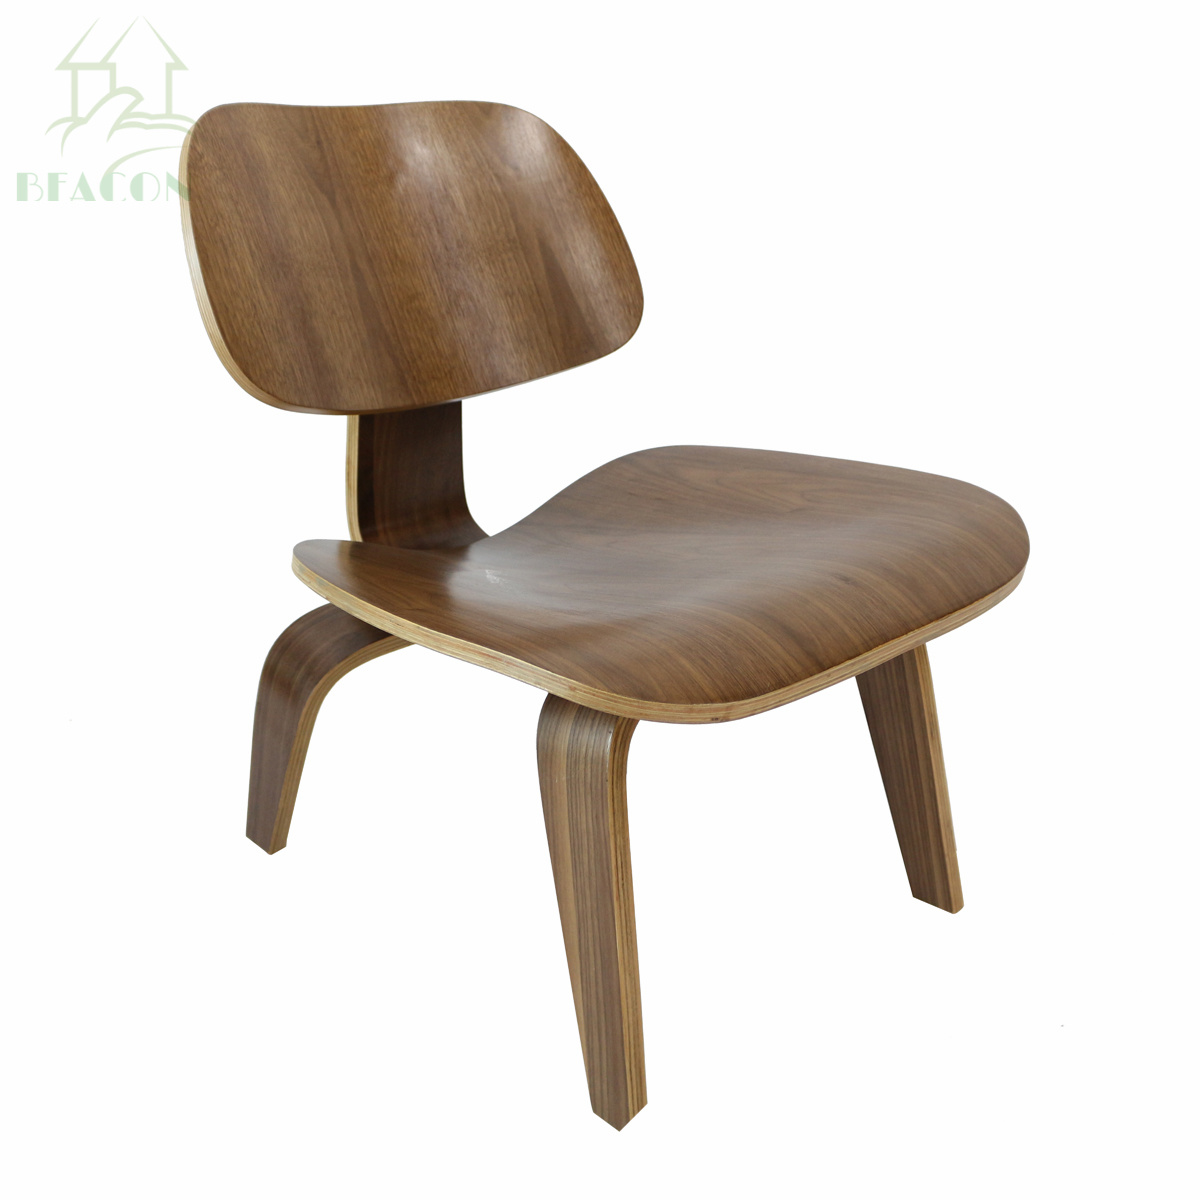 Eames Plywood Chair Hot Item Eames Lcw Lounge Plywood Chair Without Armrest